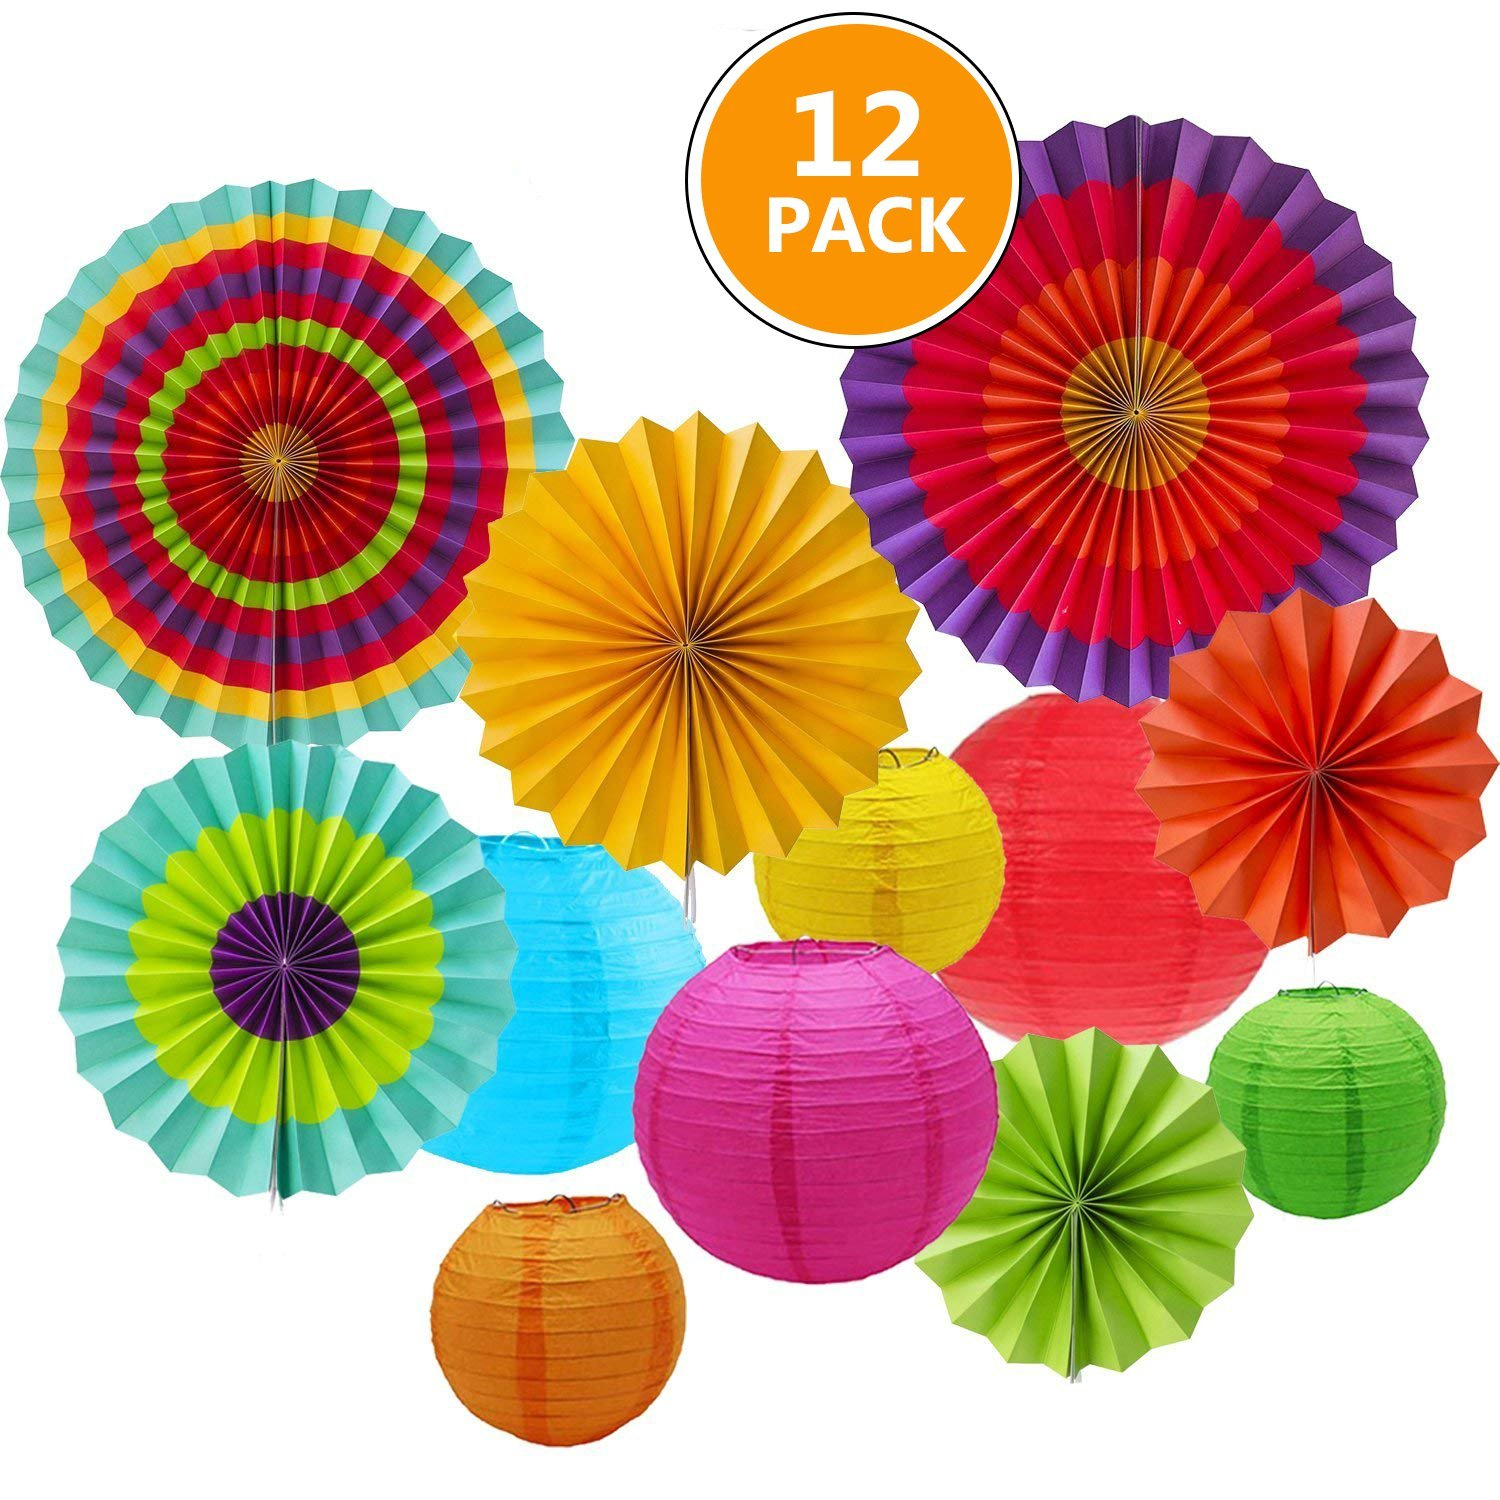 12pcs Hanging Fiesta Paper Fan Lanterns Decoration, Mexican Fiesta/Carnival/Kids Party/Birthday/Christmas Decor,Party/Events Decor, Home Decor Supplies Flavor Sonnis